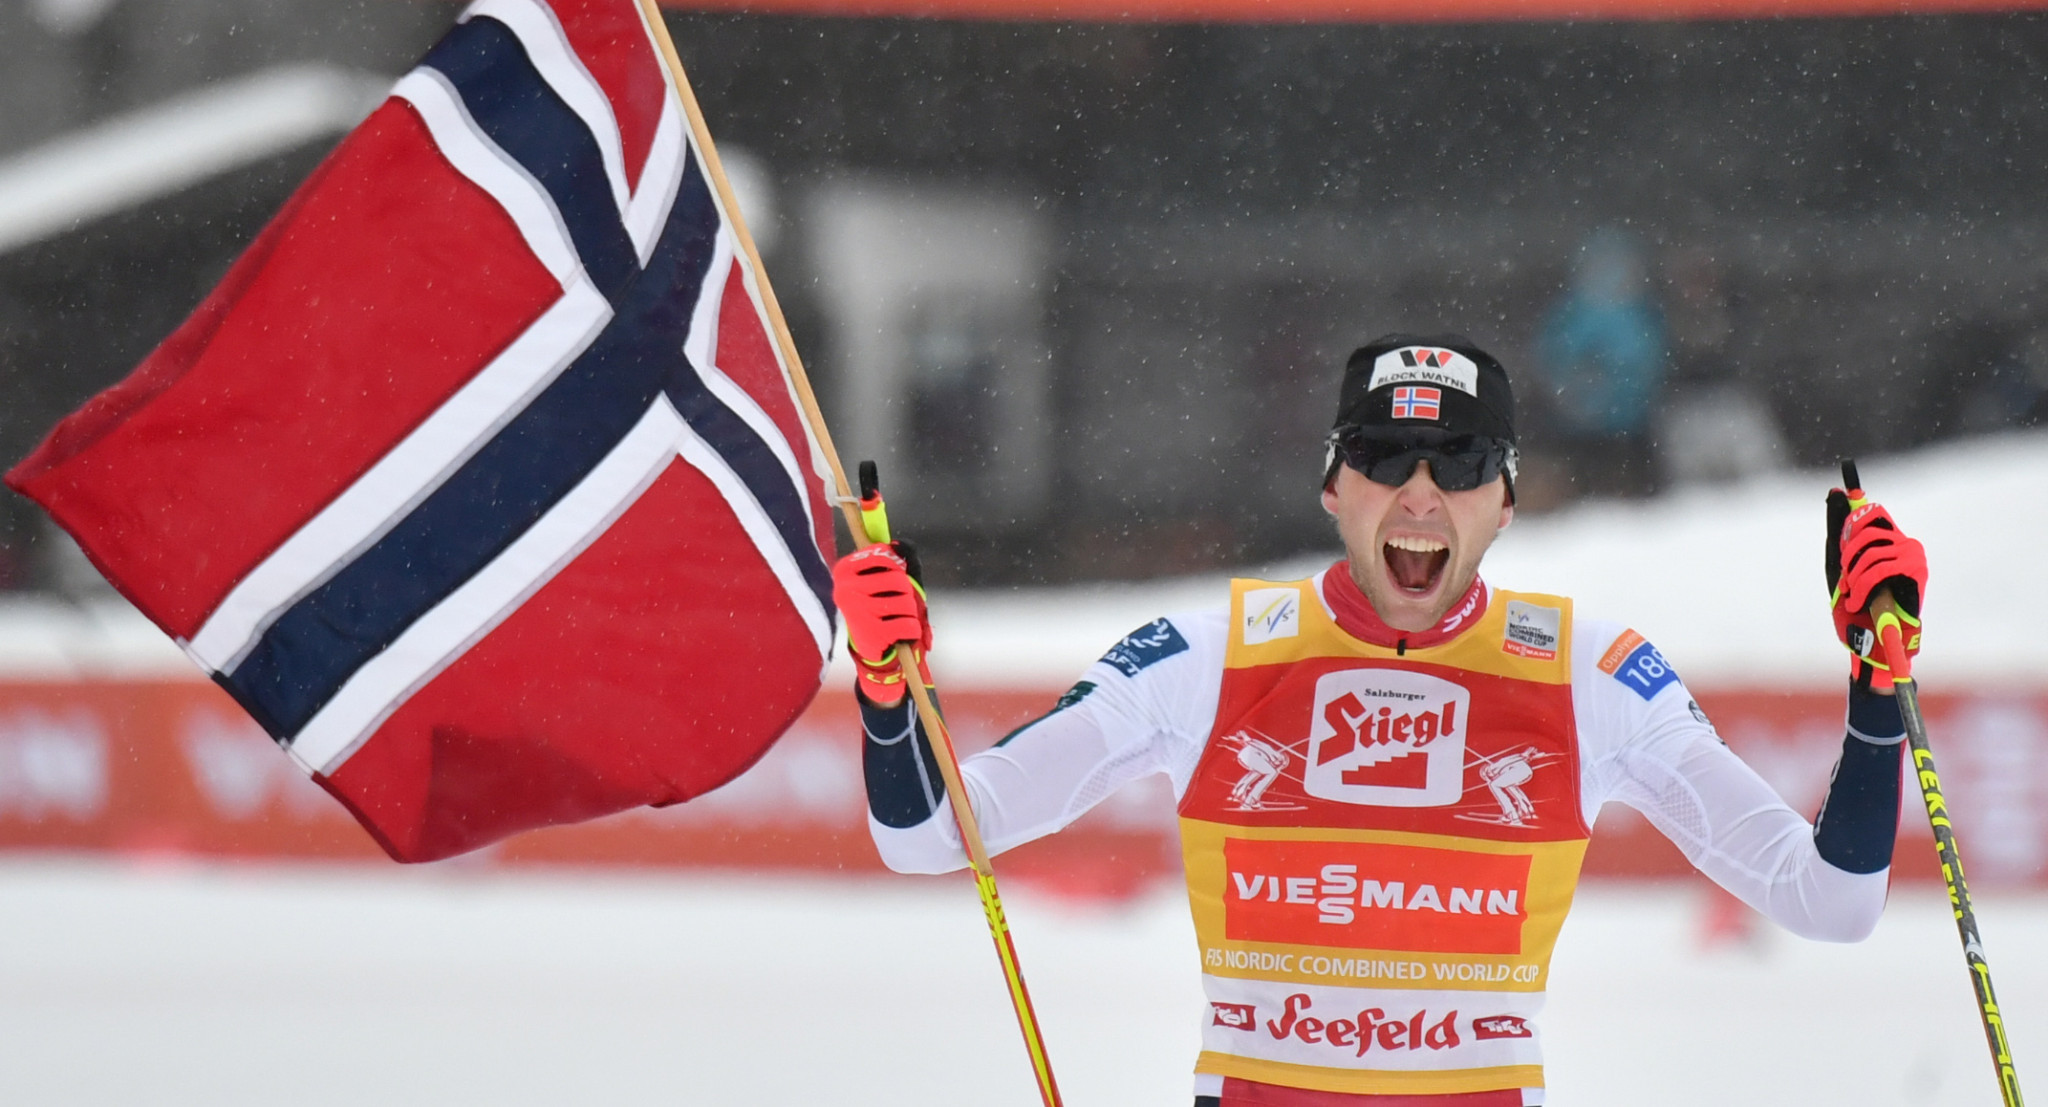 Riiber seals overall Nordic Combined World Cup title with 13th win of season